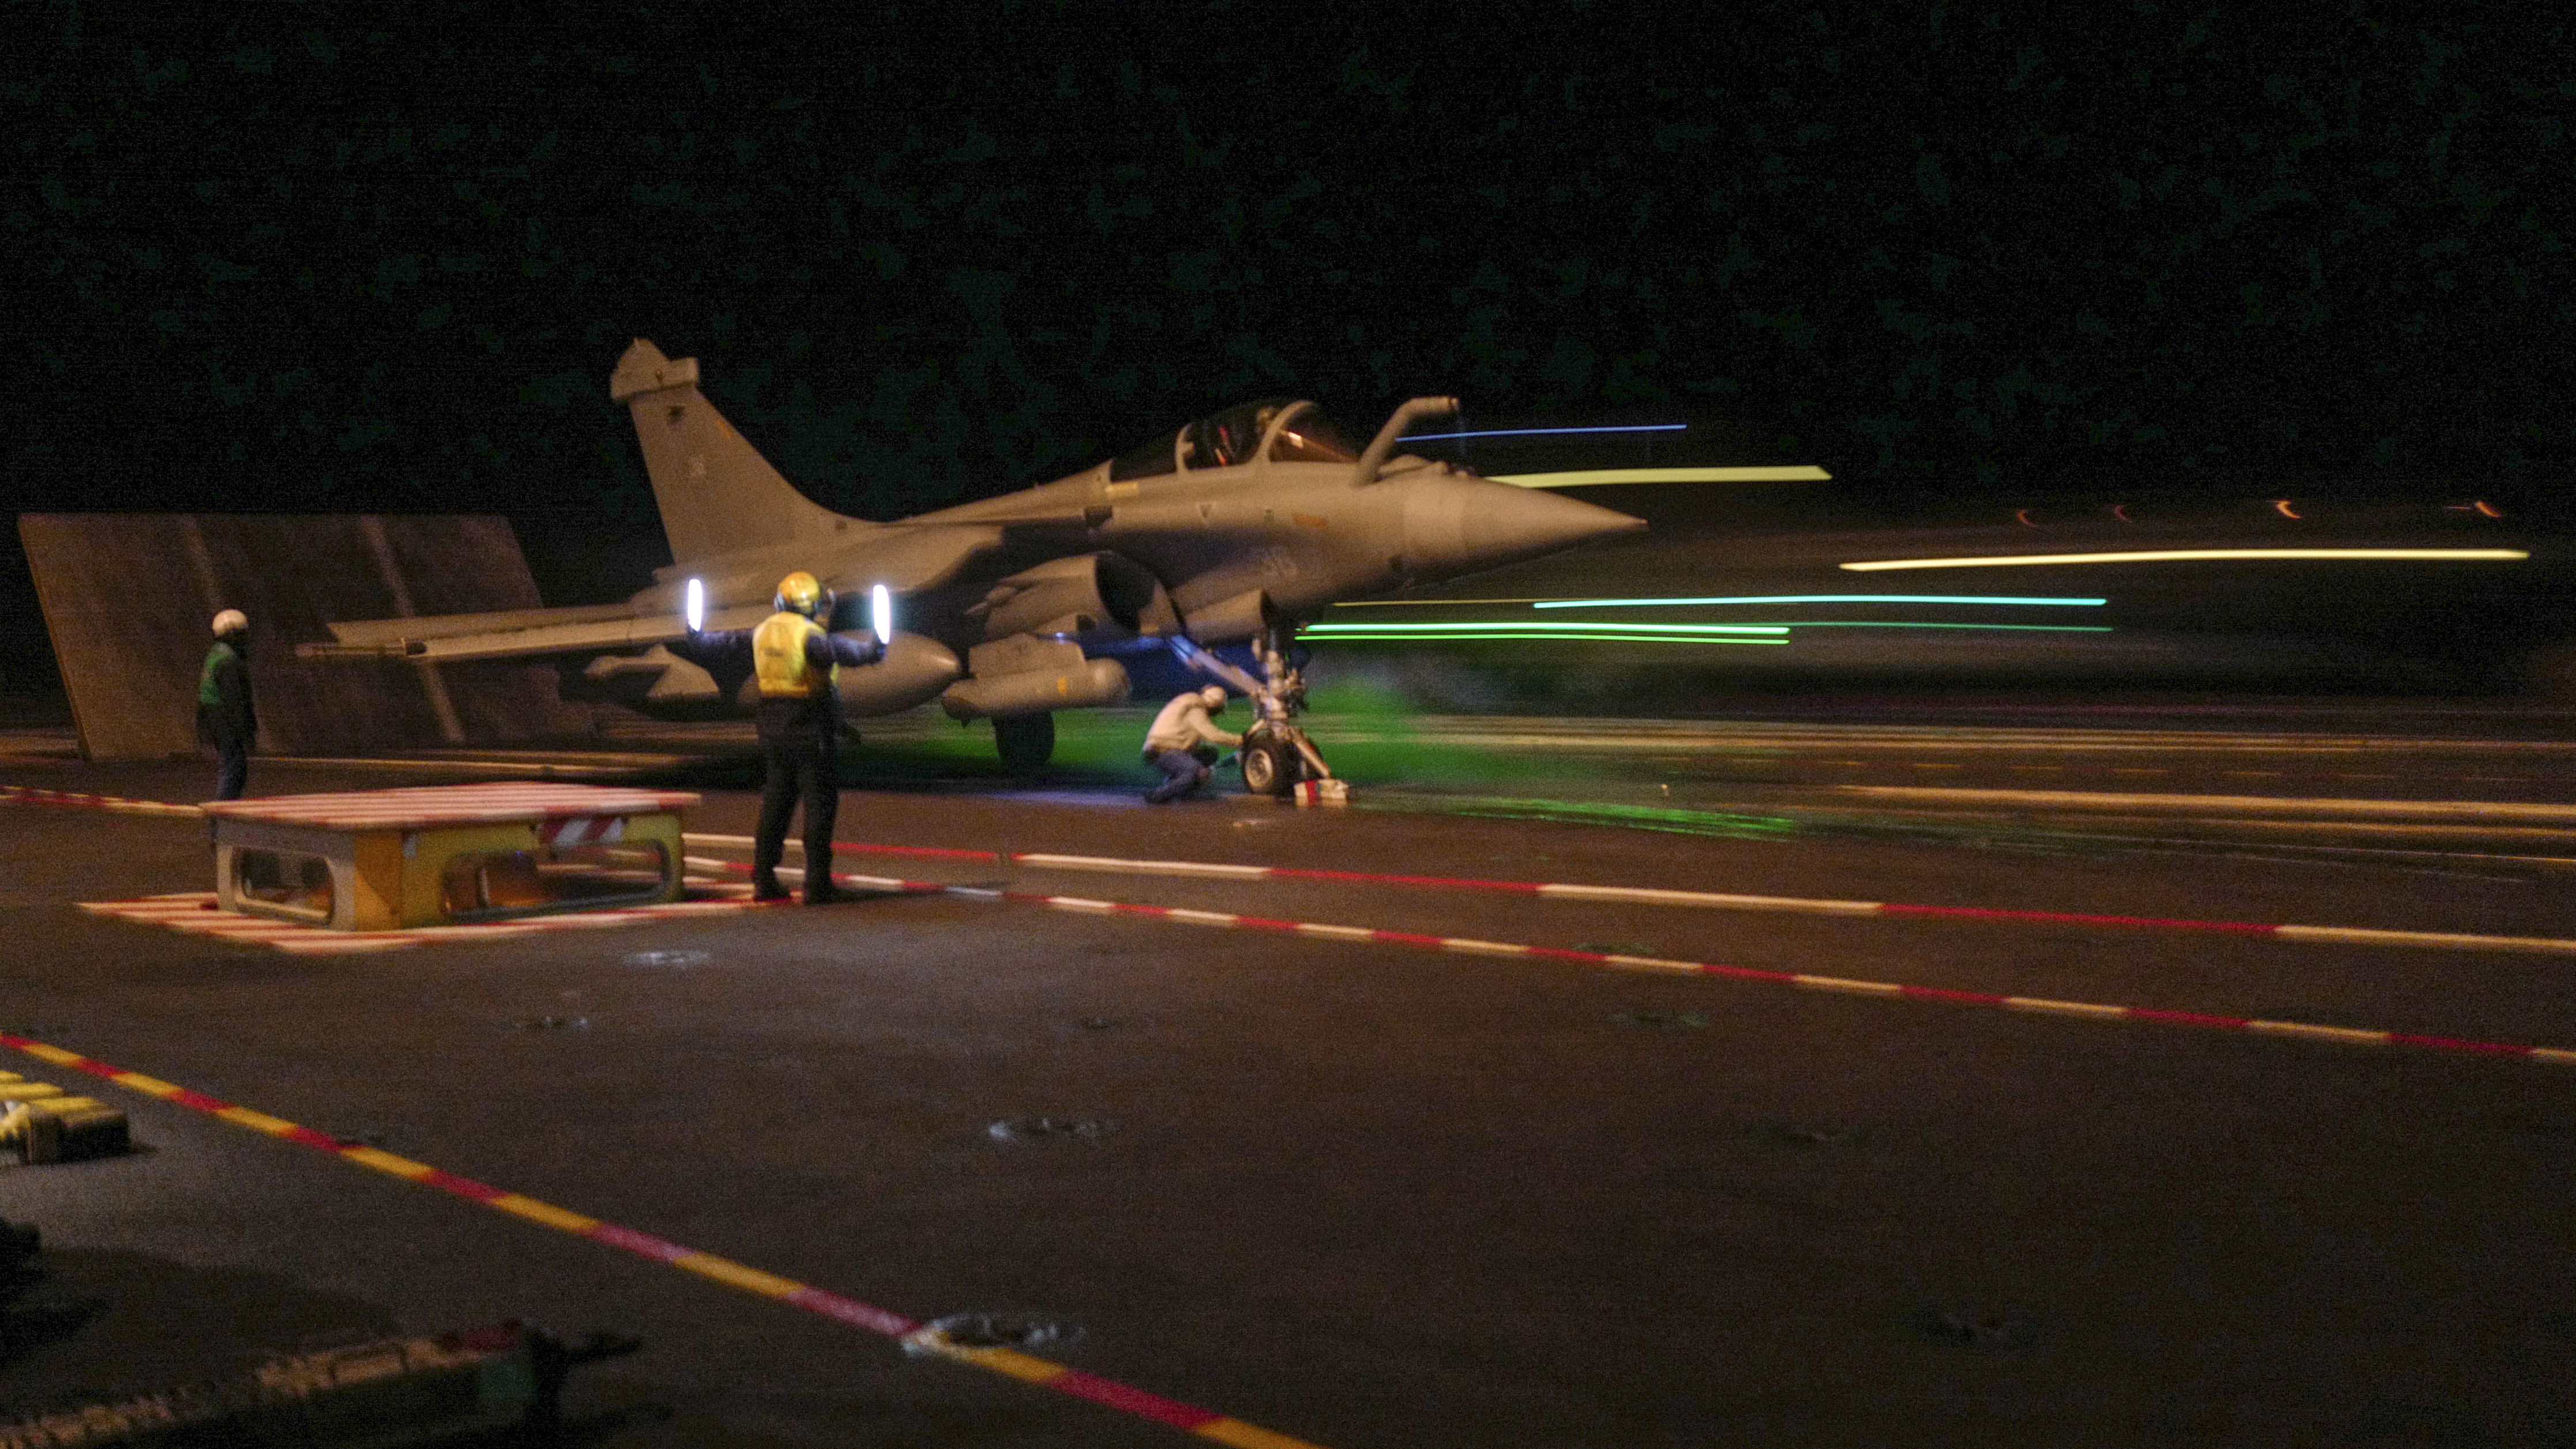 A Rafale fighter jet takes off from the carrier